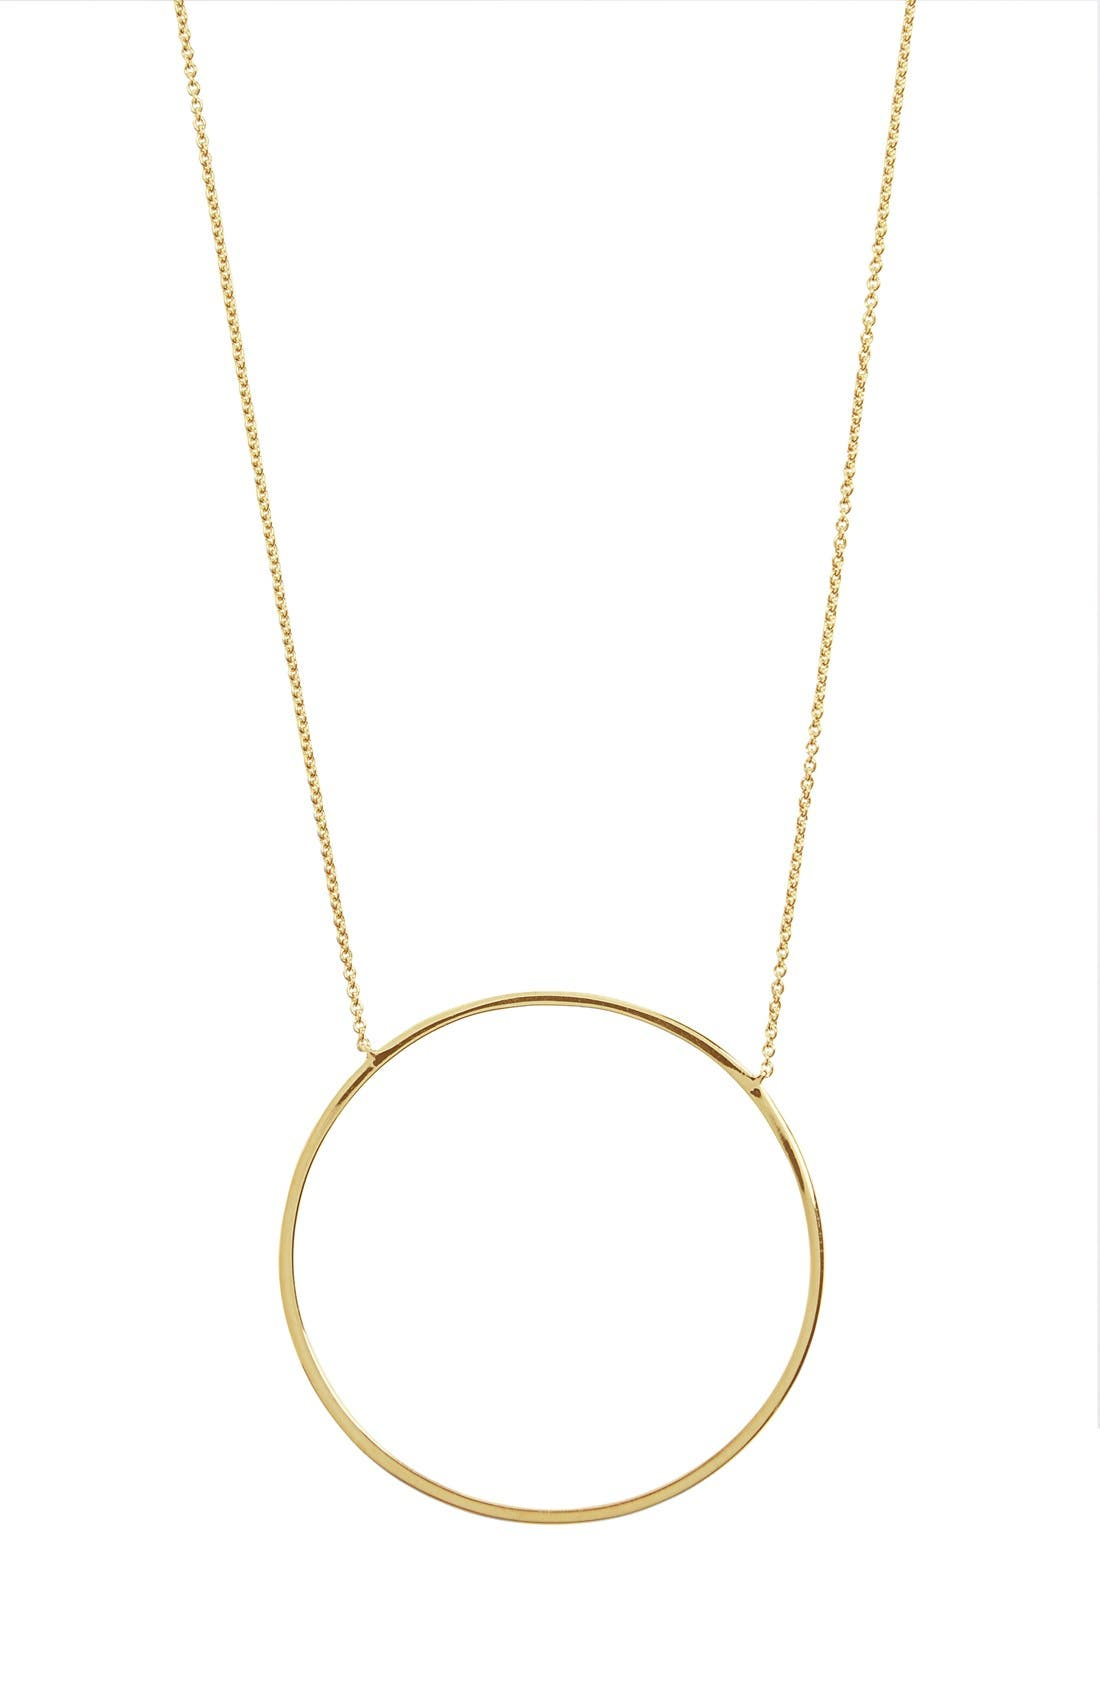 Alternate Image 1 Selected - Bony Levy Pendant Necklace (Nordstrom Exclusive)